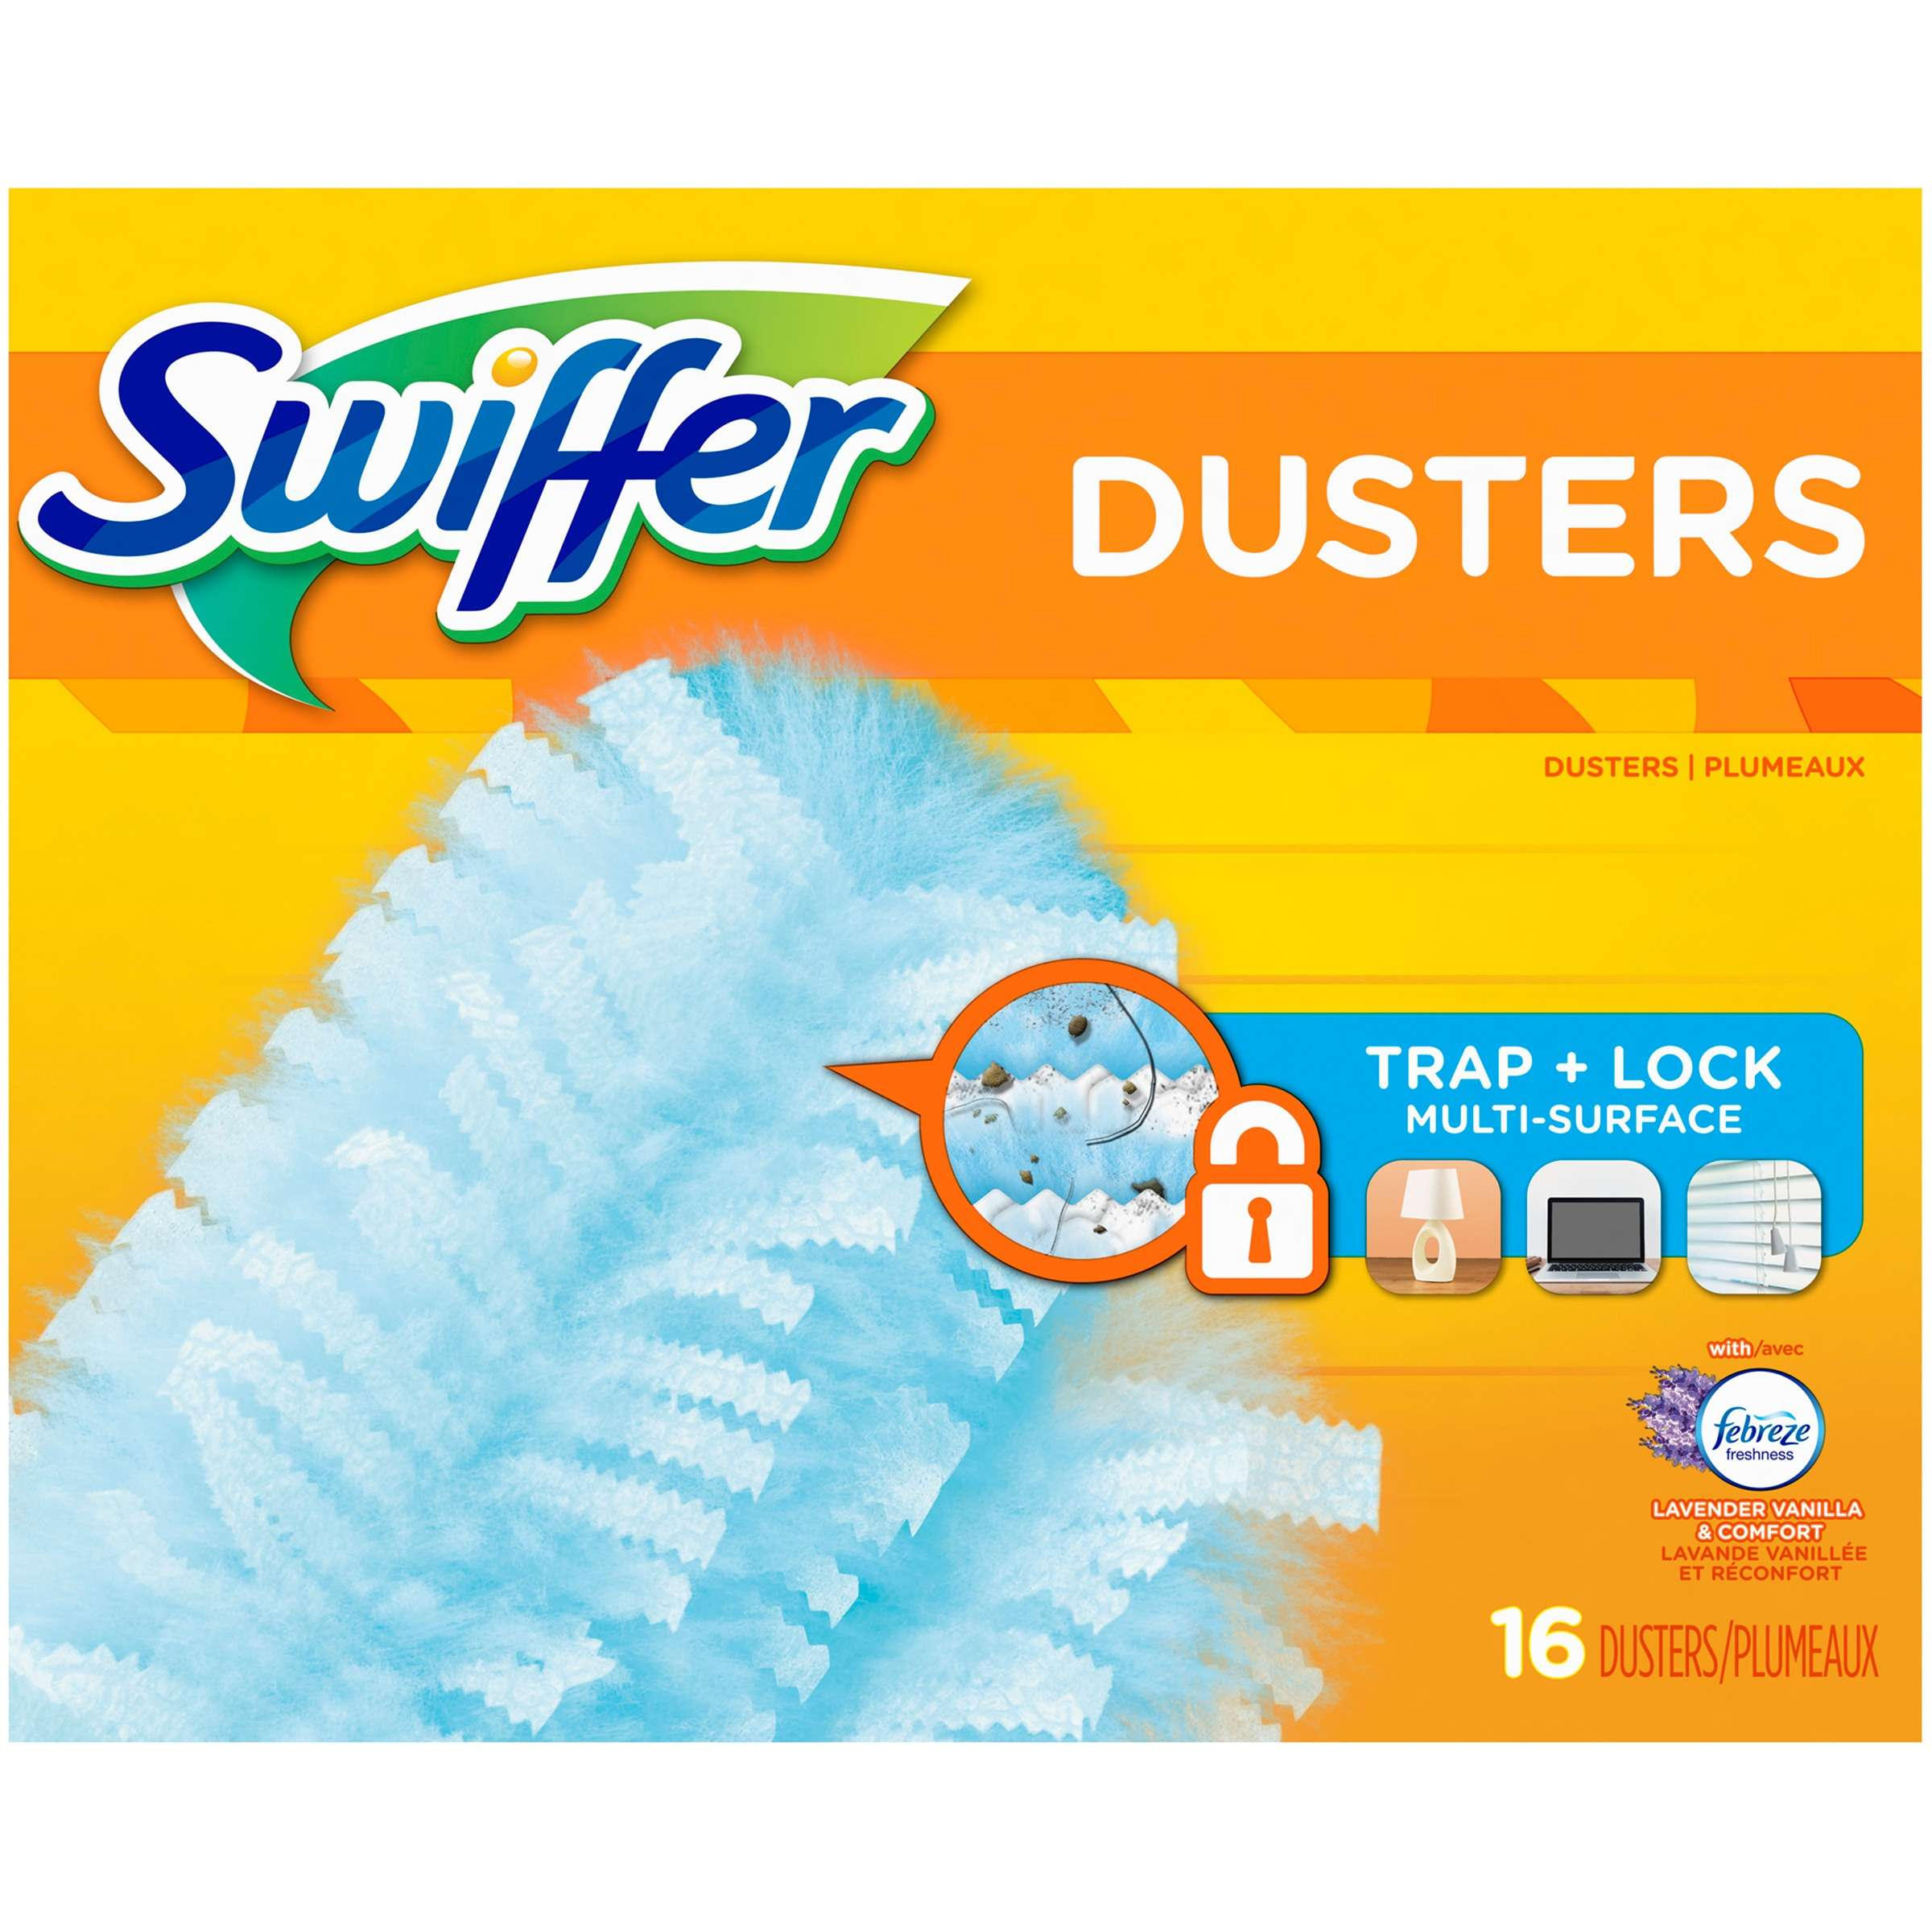 Swiffer 180 Dusters Multi Surface Refills, with Febreze Lavender & Vanilla scent, 16 Count